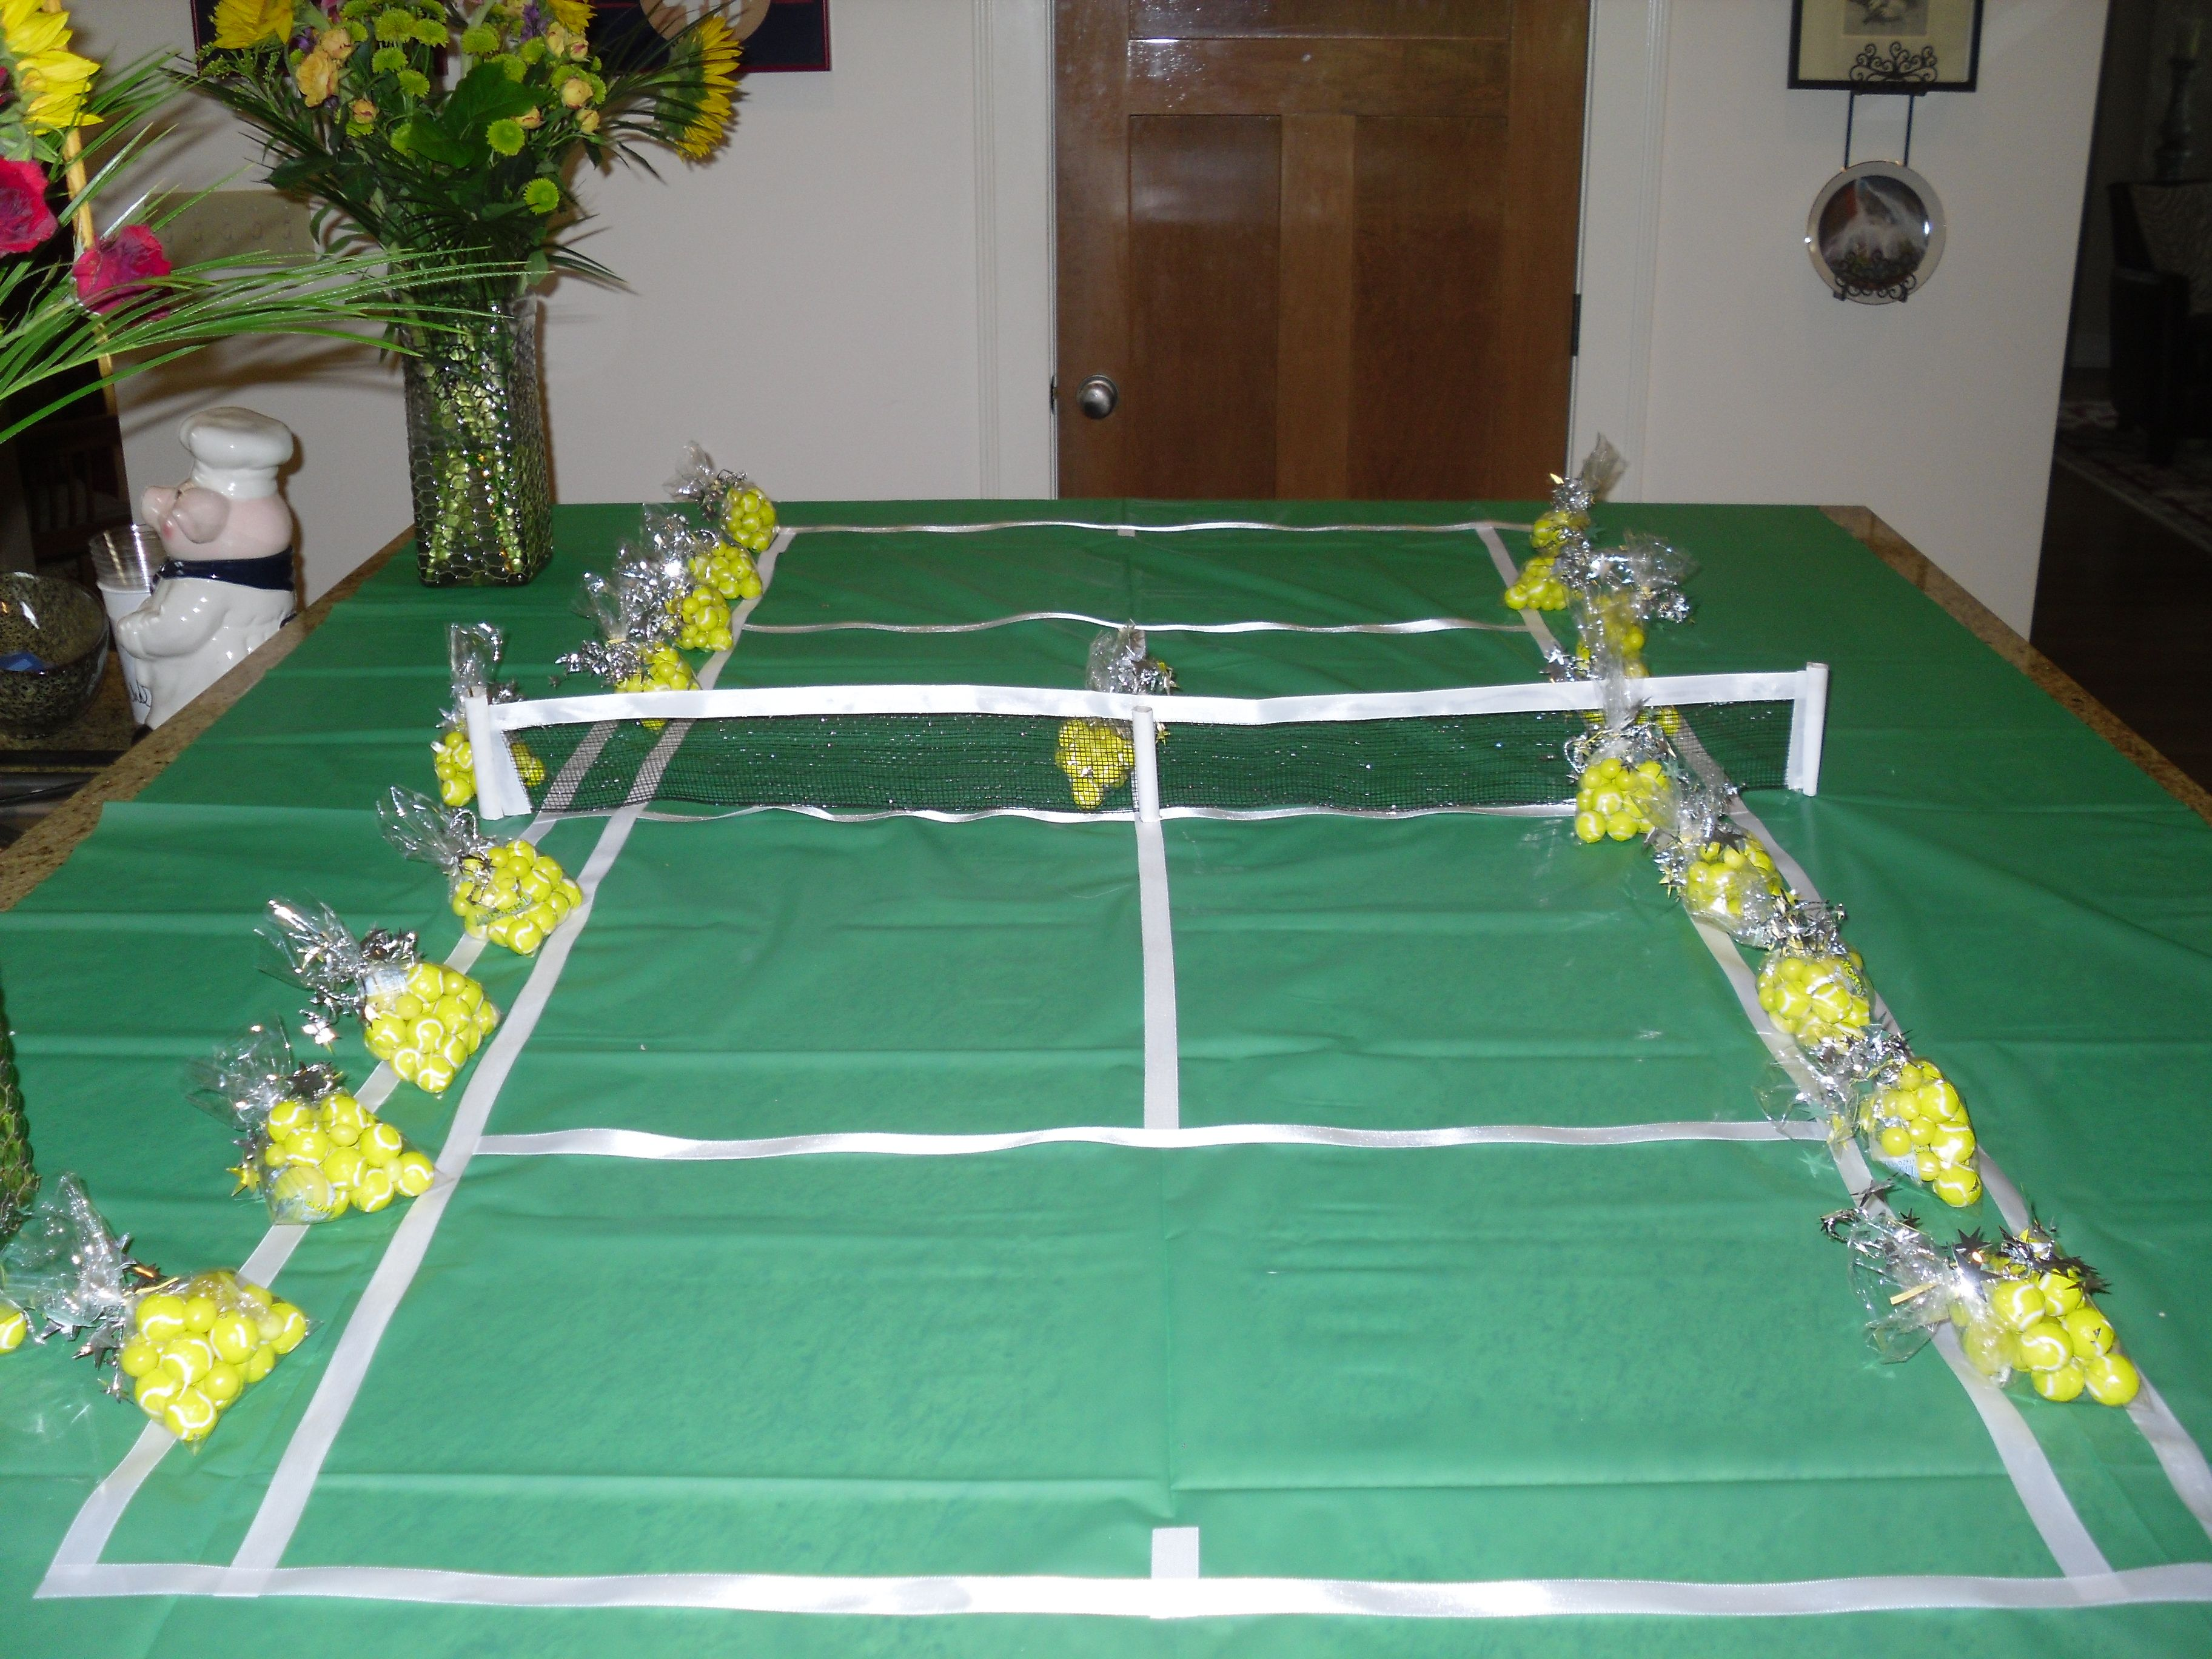 Tennis Court Made With Green Vinyl Tablecloth, White Ribbon, Black Mesh  Ribbon, And